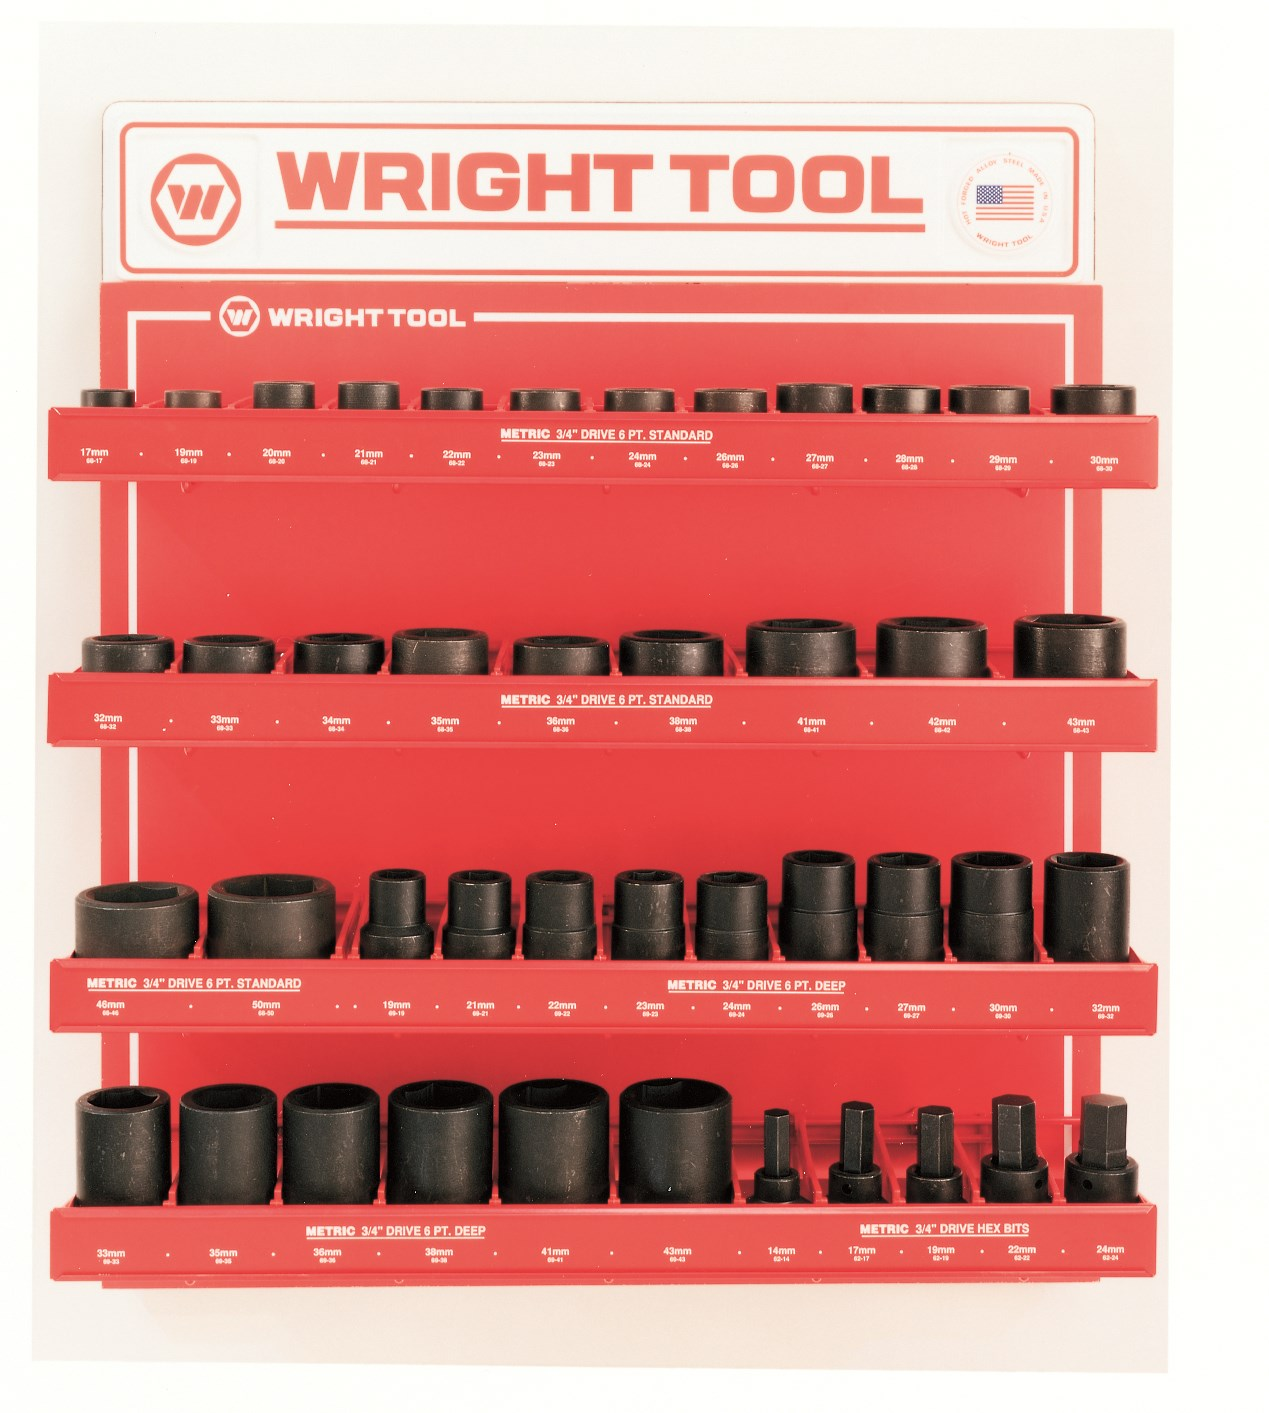 Wright Tool D960 43 Piece 3/4-inch Drive 6-Point Standard and Deep Sockets